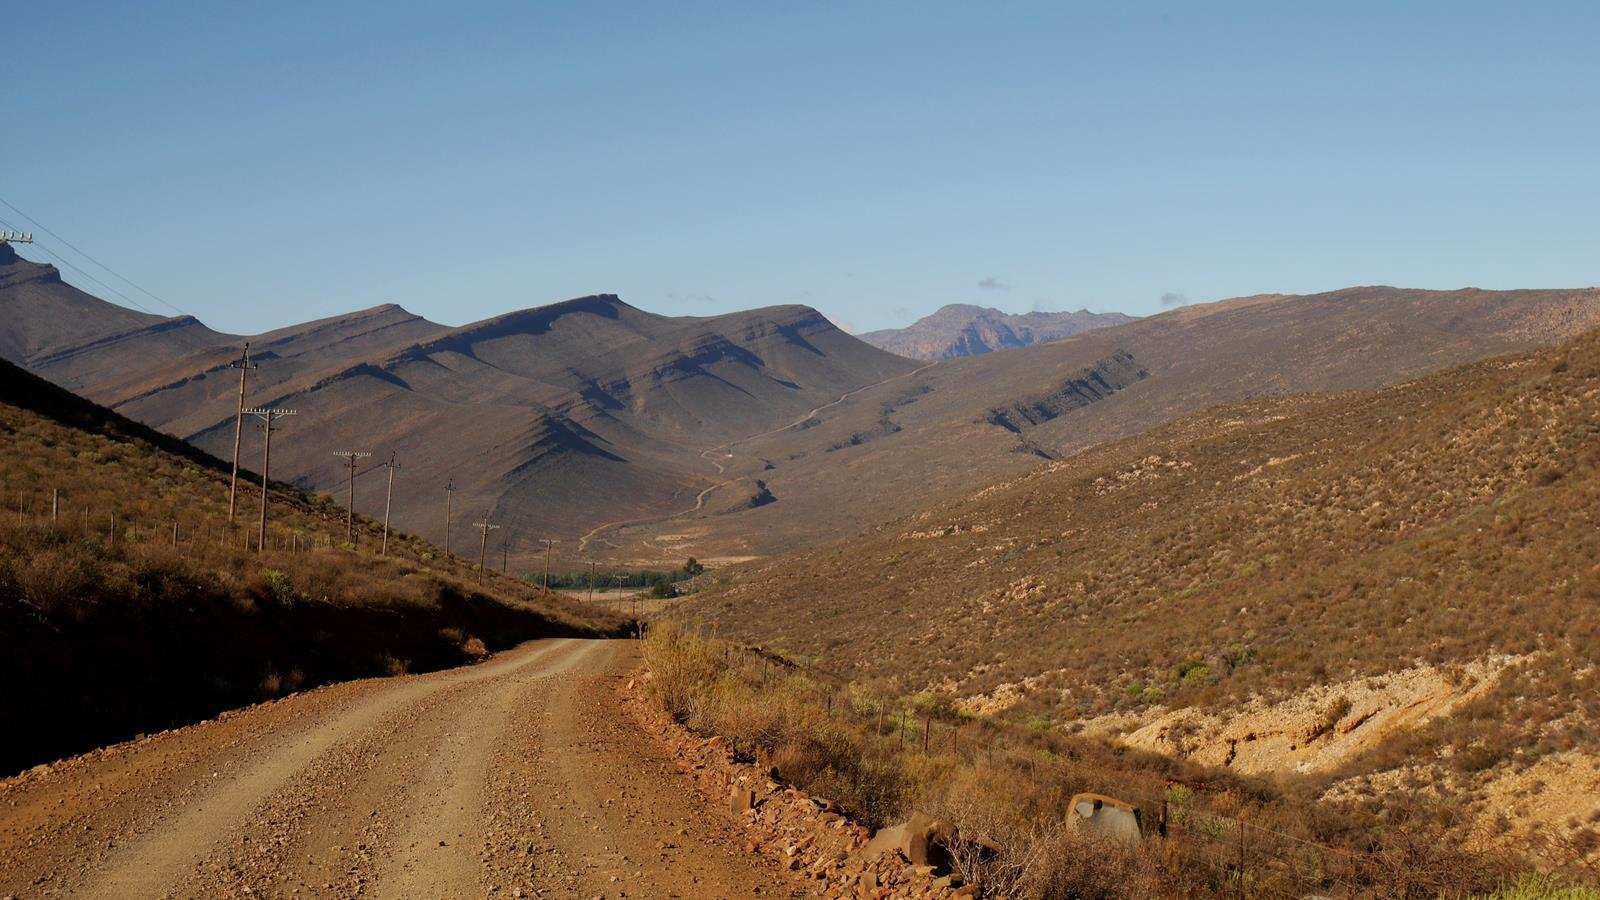 Driving off the beaten track into the Cederberg Wilderness.